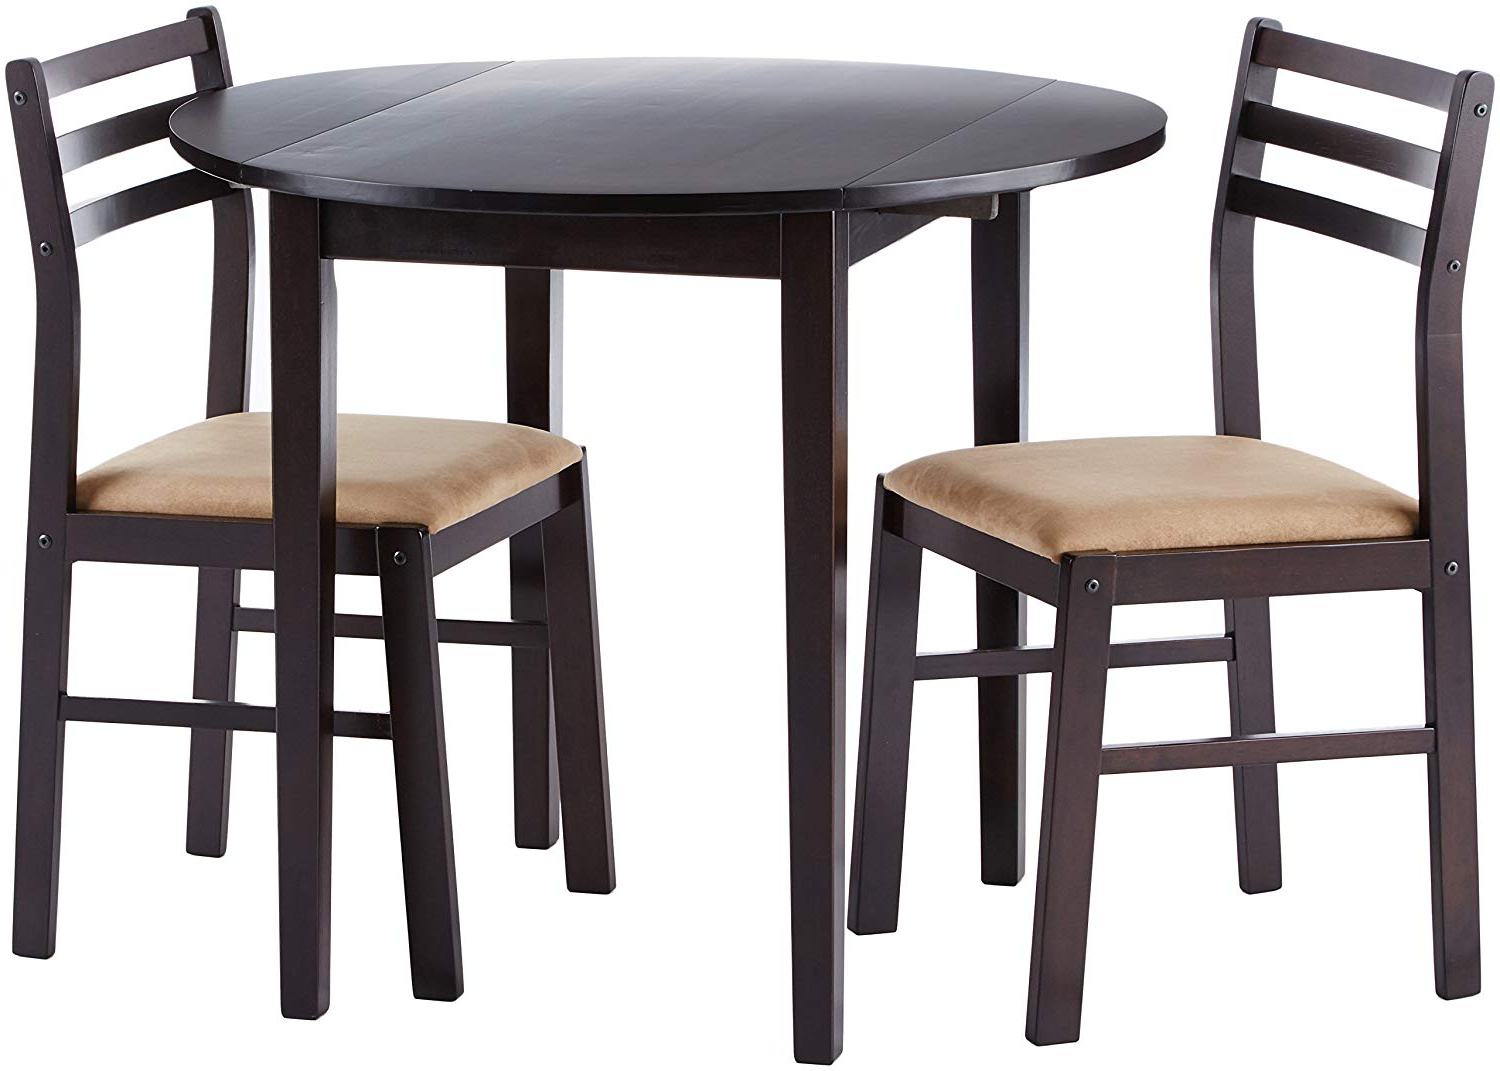 Newest Baillie 3 Piece Dining Sets In Coaster Home Furnishings 3 Piece Dining Set With Drop Leaf Cappuccino And  Tan (Gallery 9 of 20)